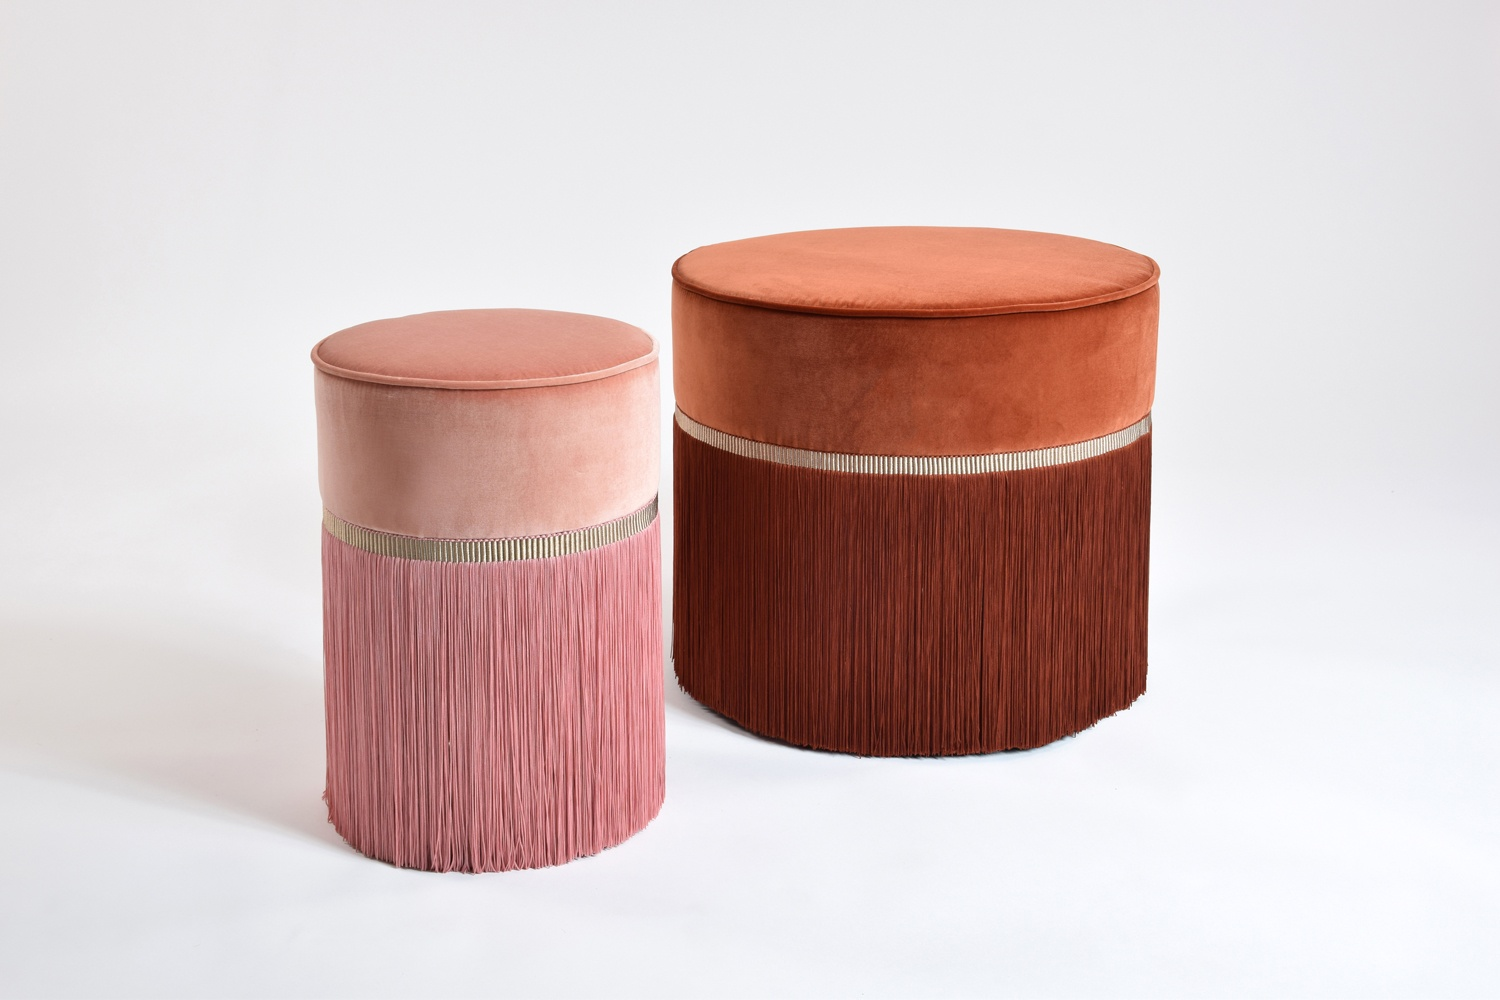 lorenza-bozzoli-presents-couture-pouf-for-luisa-via-roma-home-yellowtrace-05